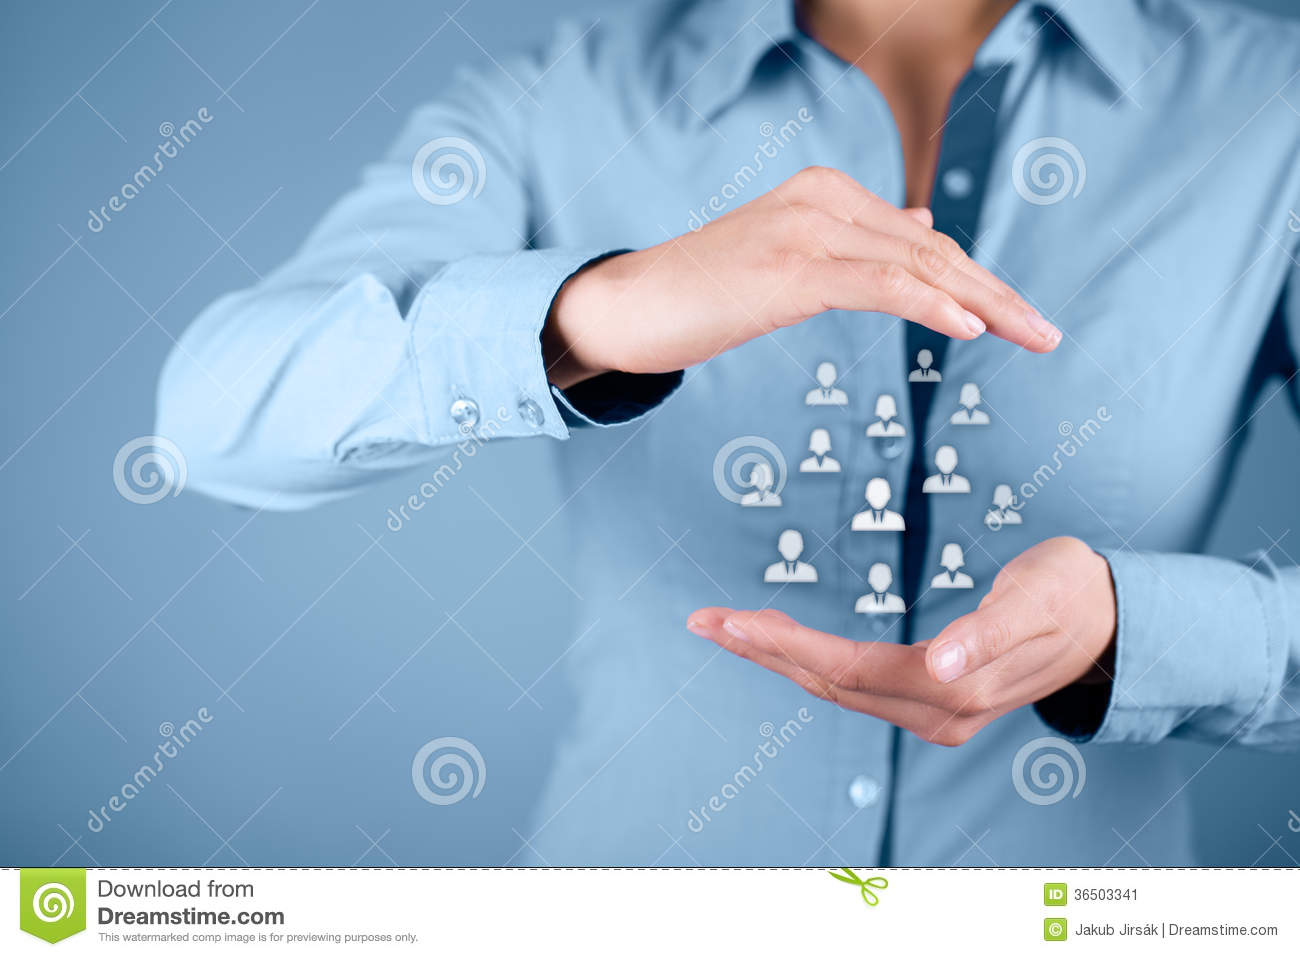 Human Resources And Customer Care Stock Image - Image ...